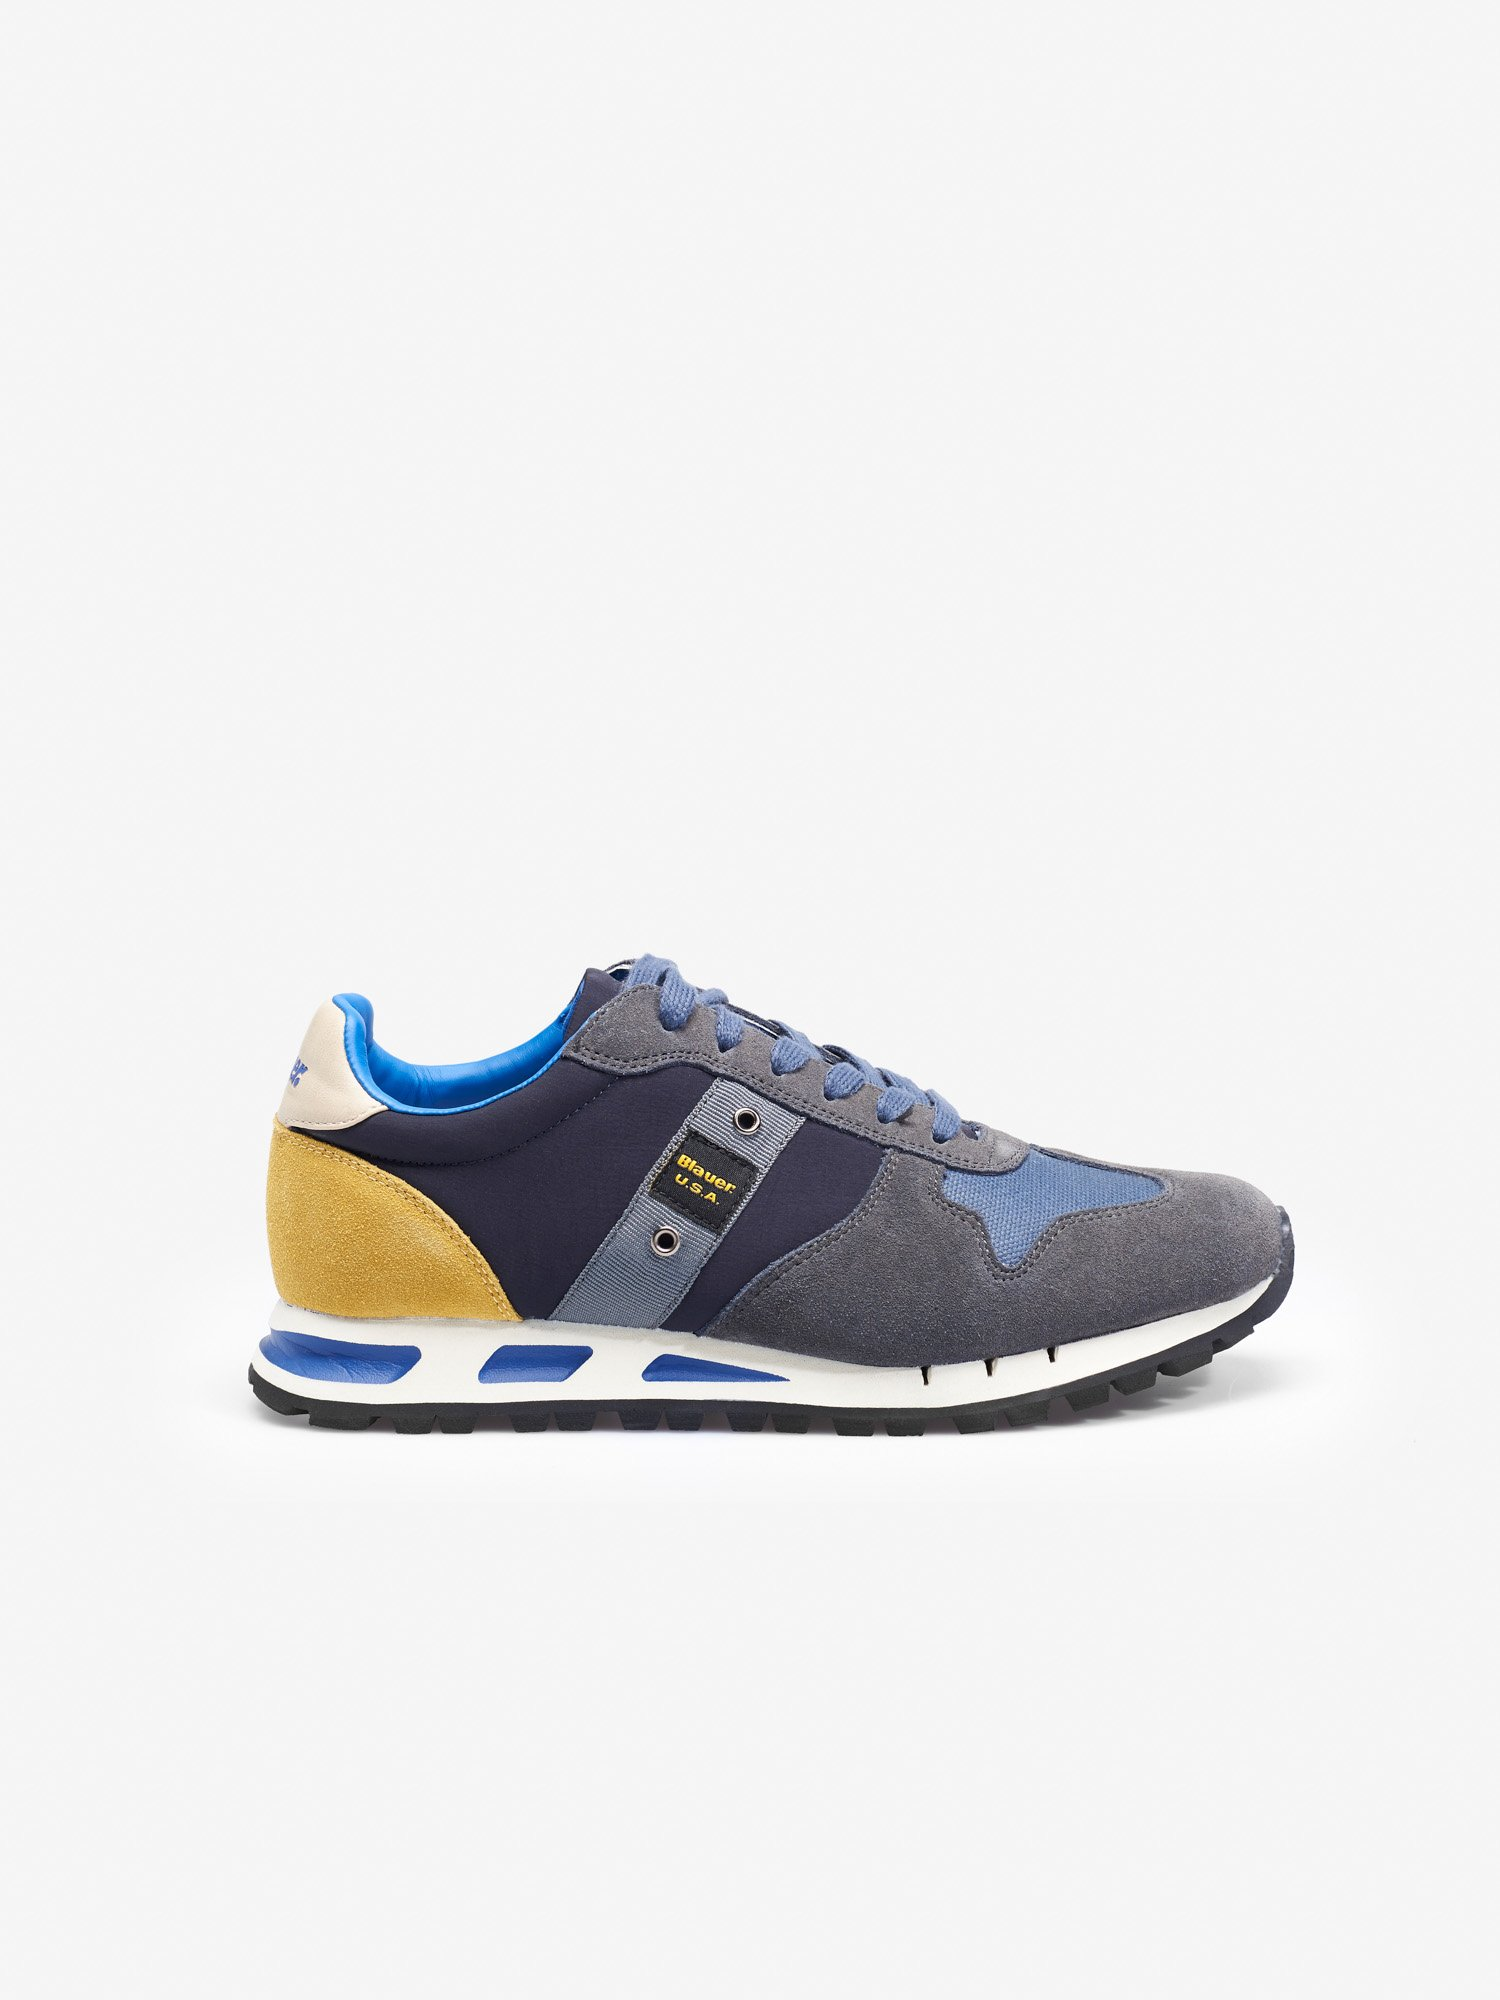 MUSTANG SUEDE TRAINERS - Blauer